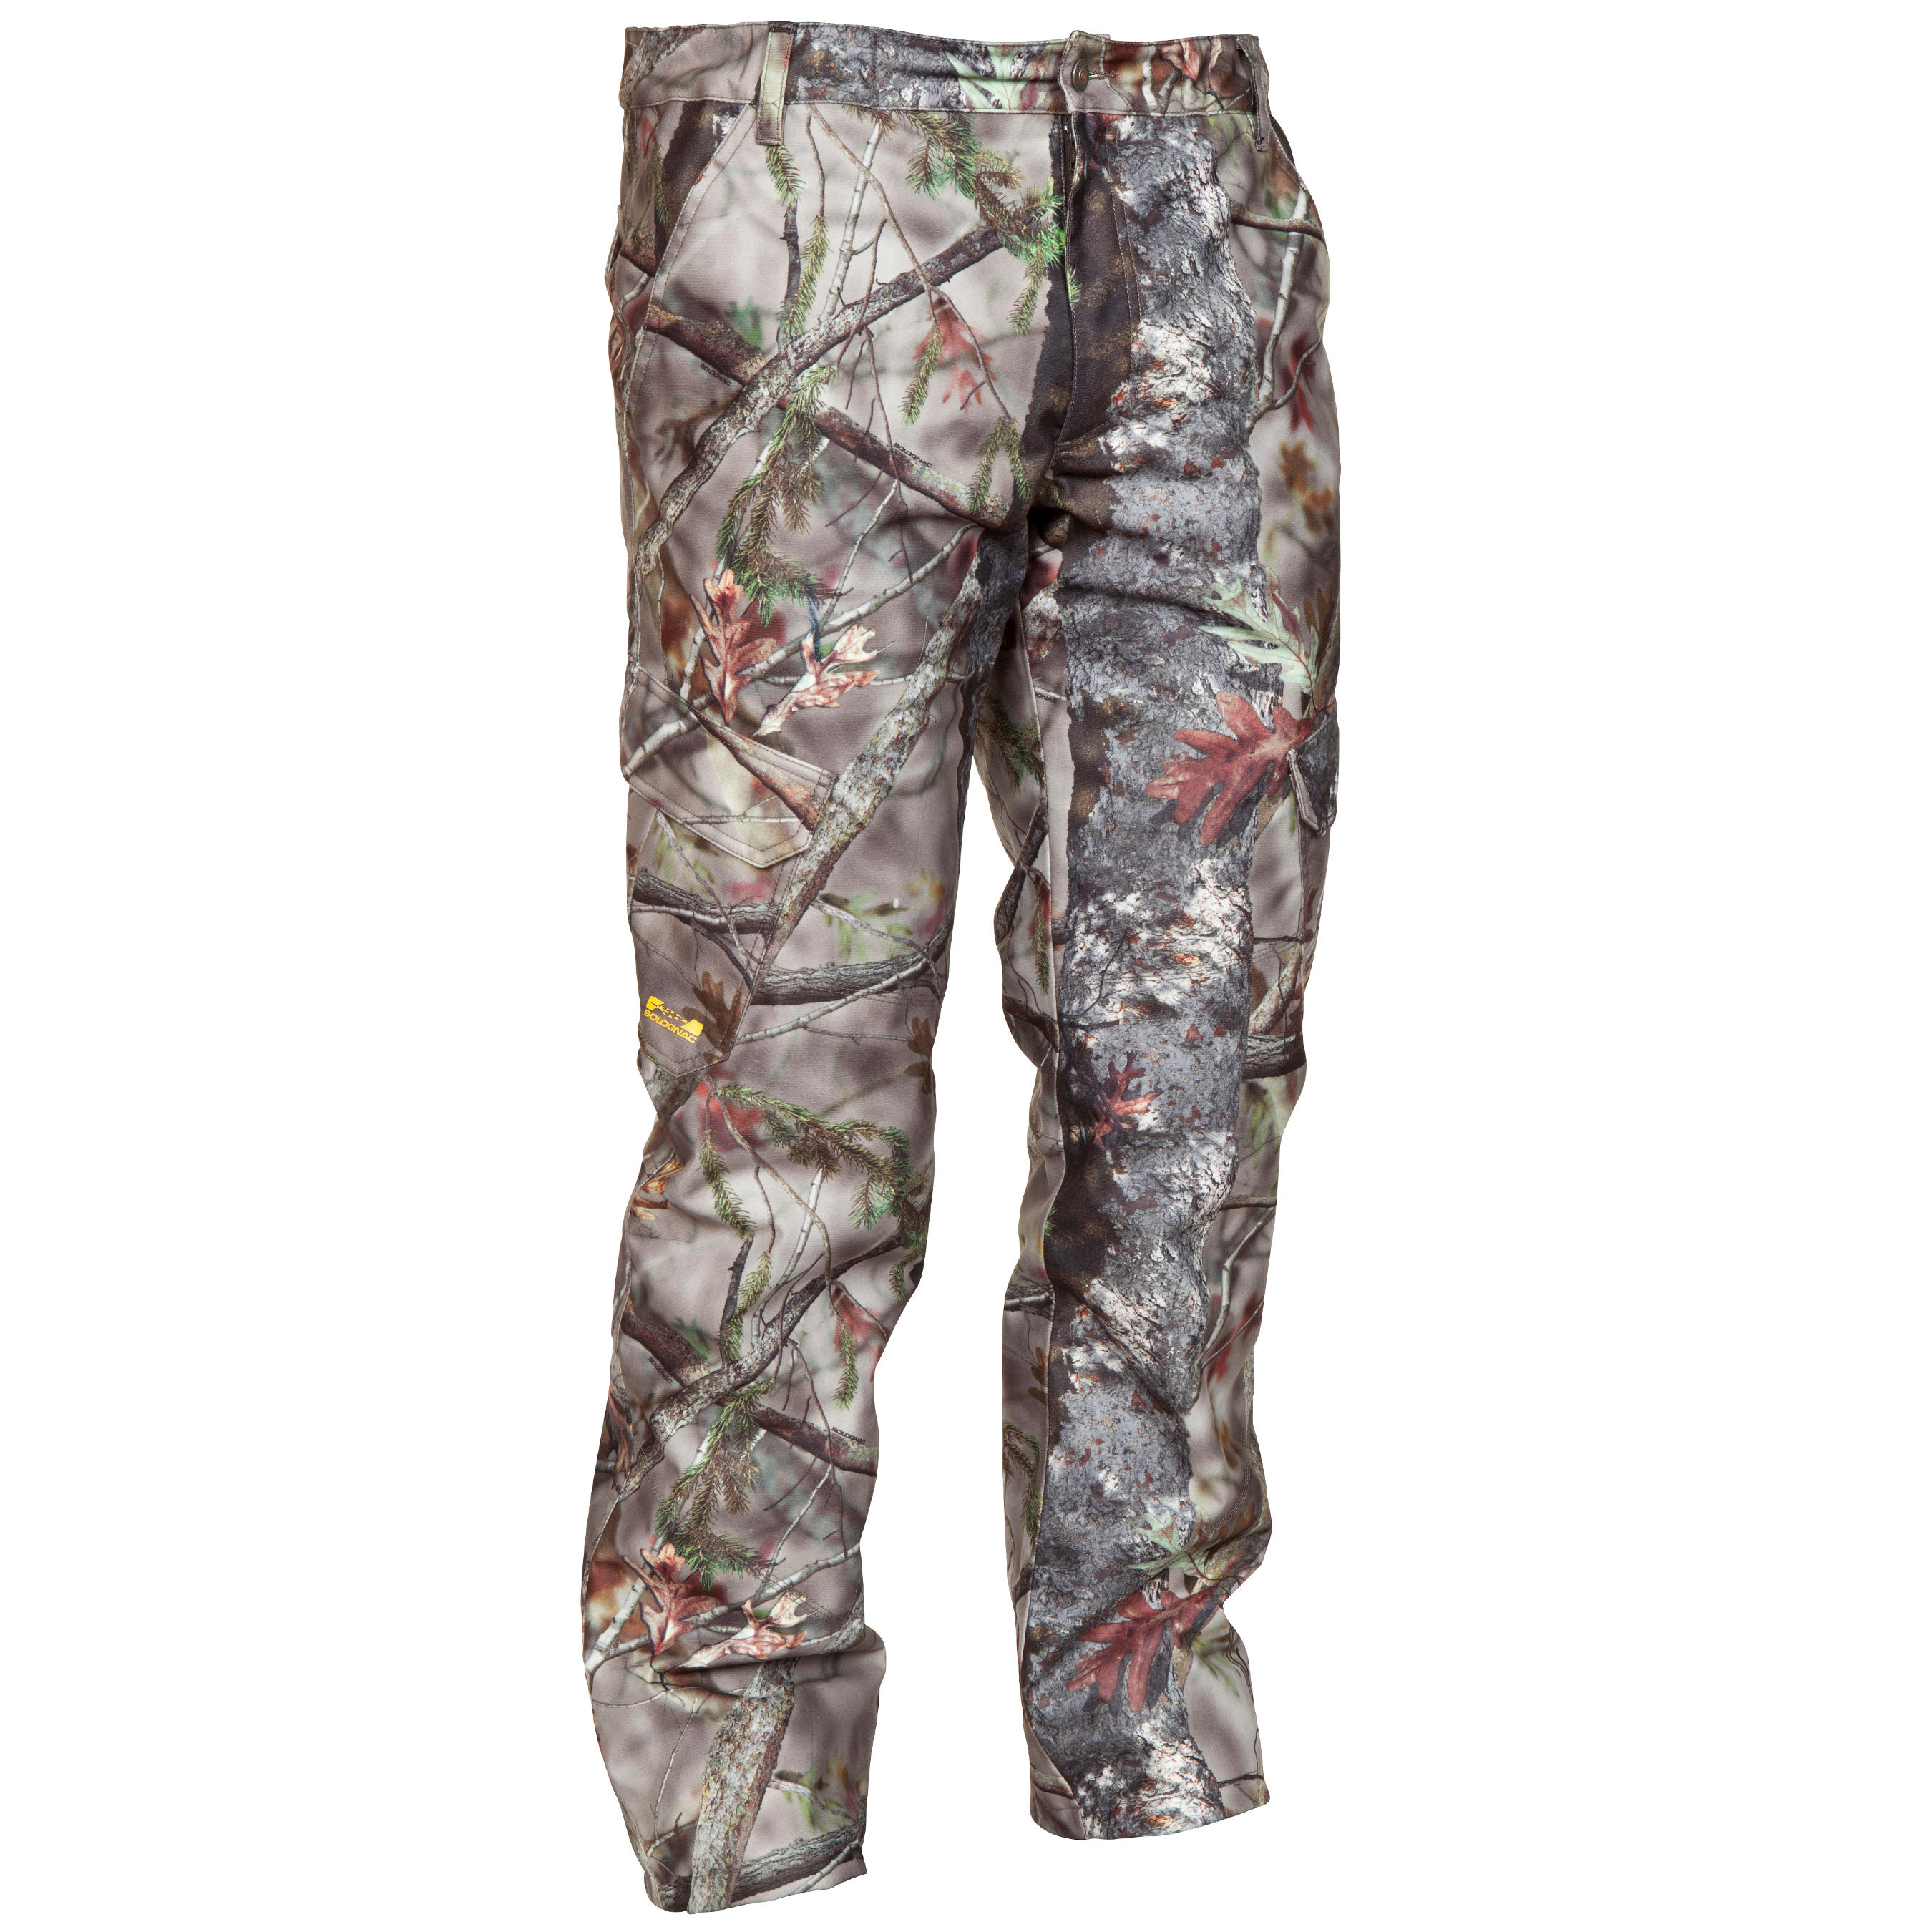 POSIKAM 300 WATERPROOF HUNTING PANTS - CAMOUFLAGE BROWN